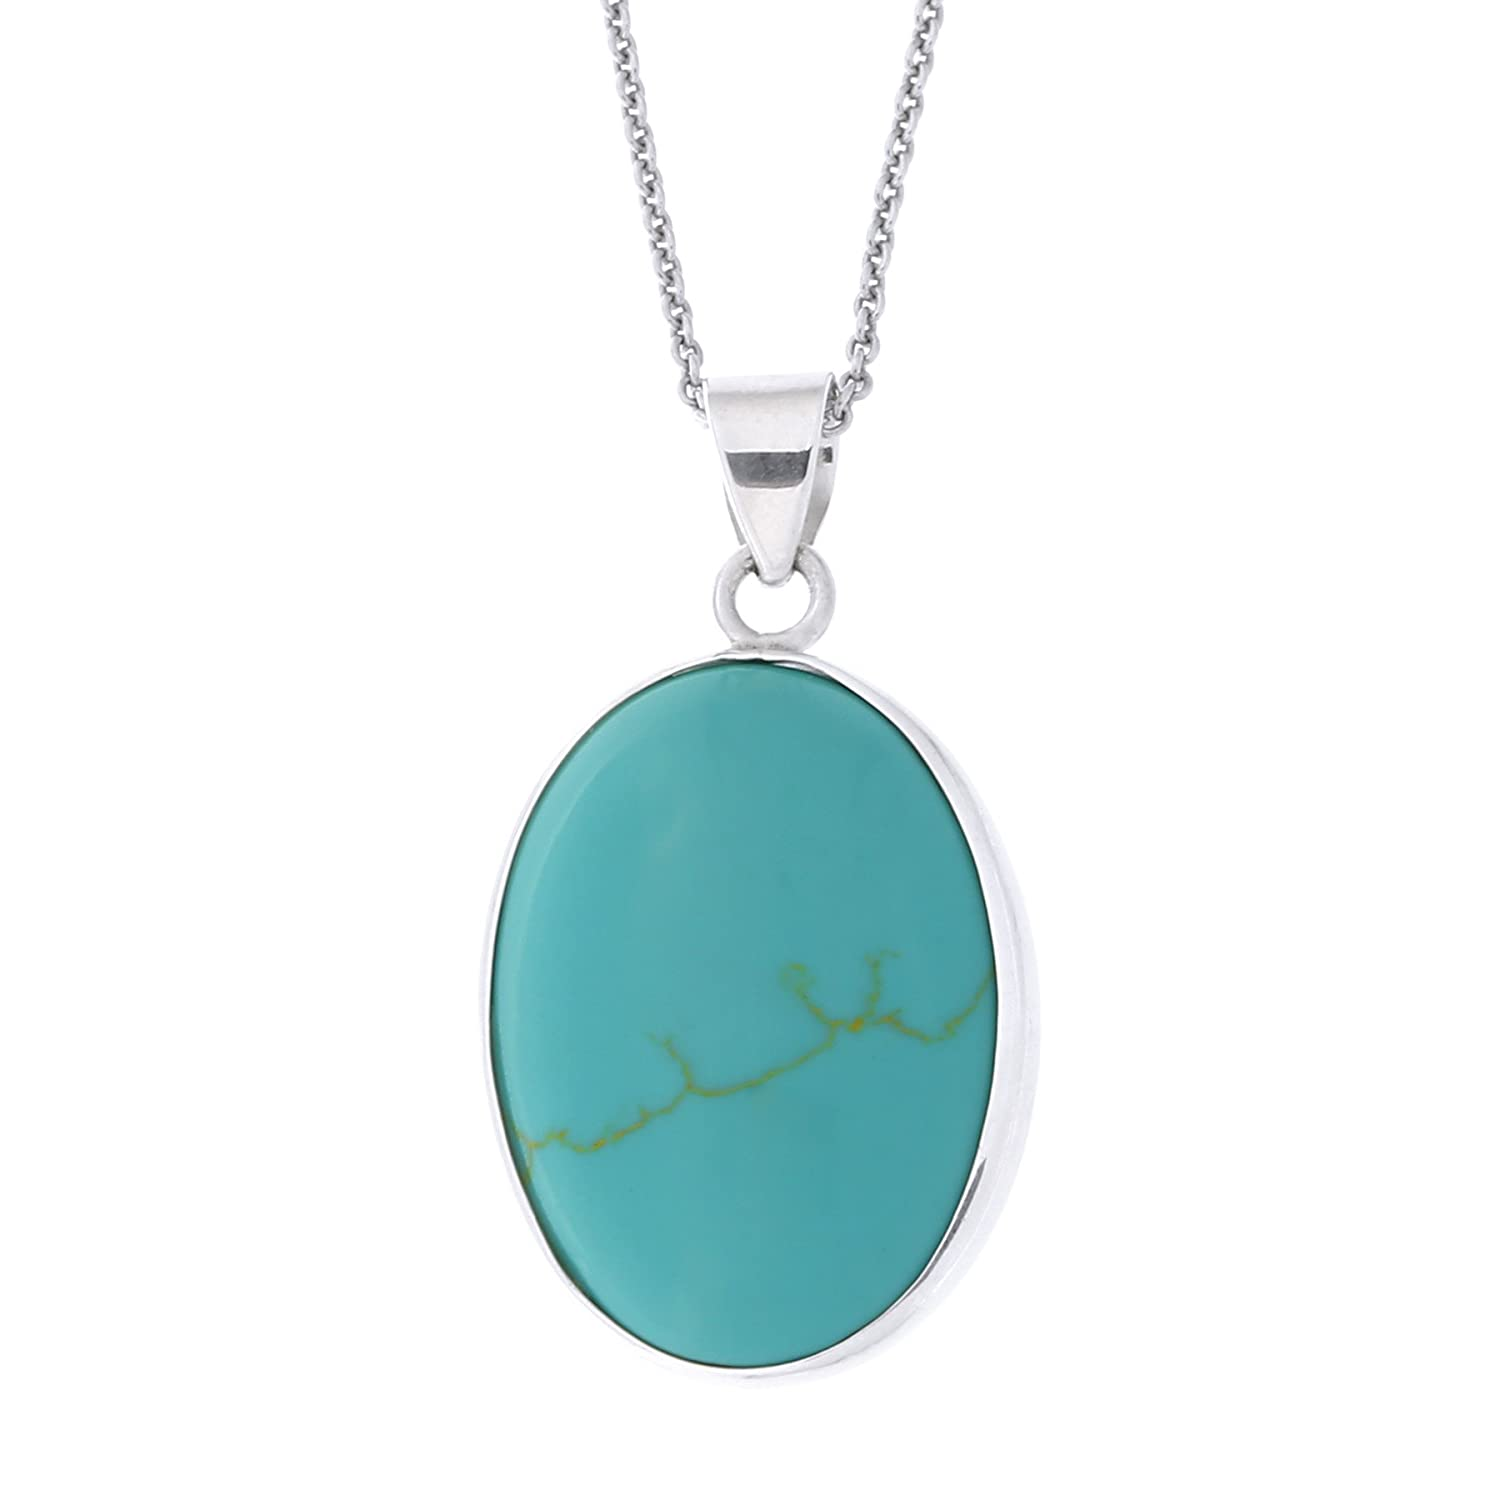 Beauniq Solid Sterling Silver Simulated Turquoise Oval Pendant Necklace